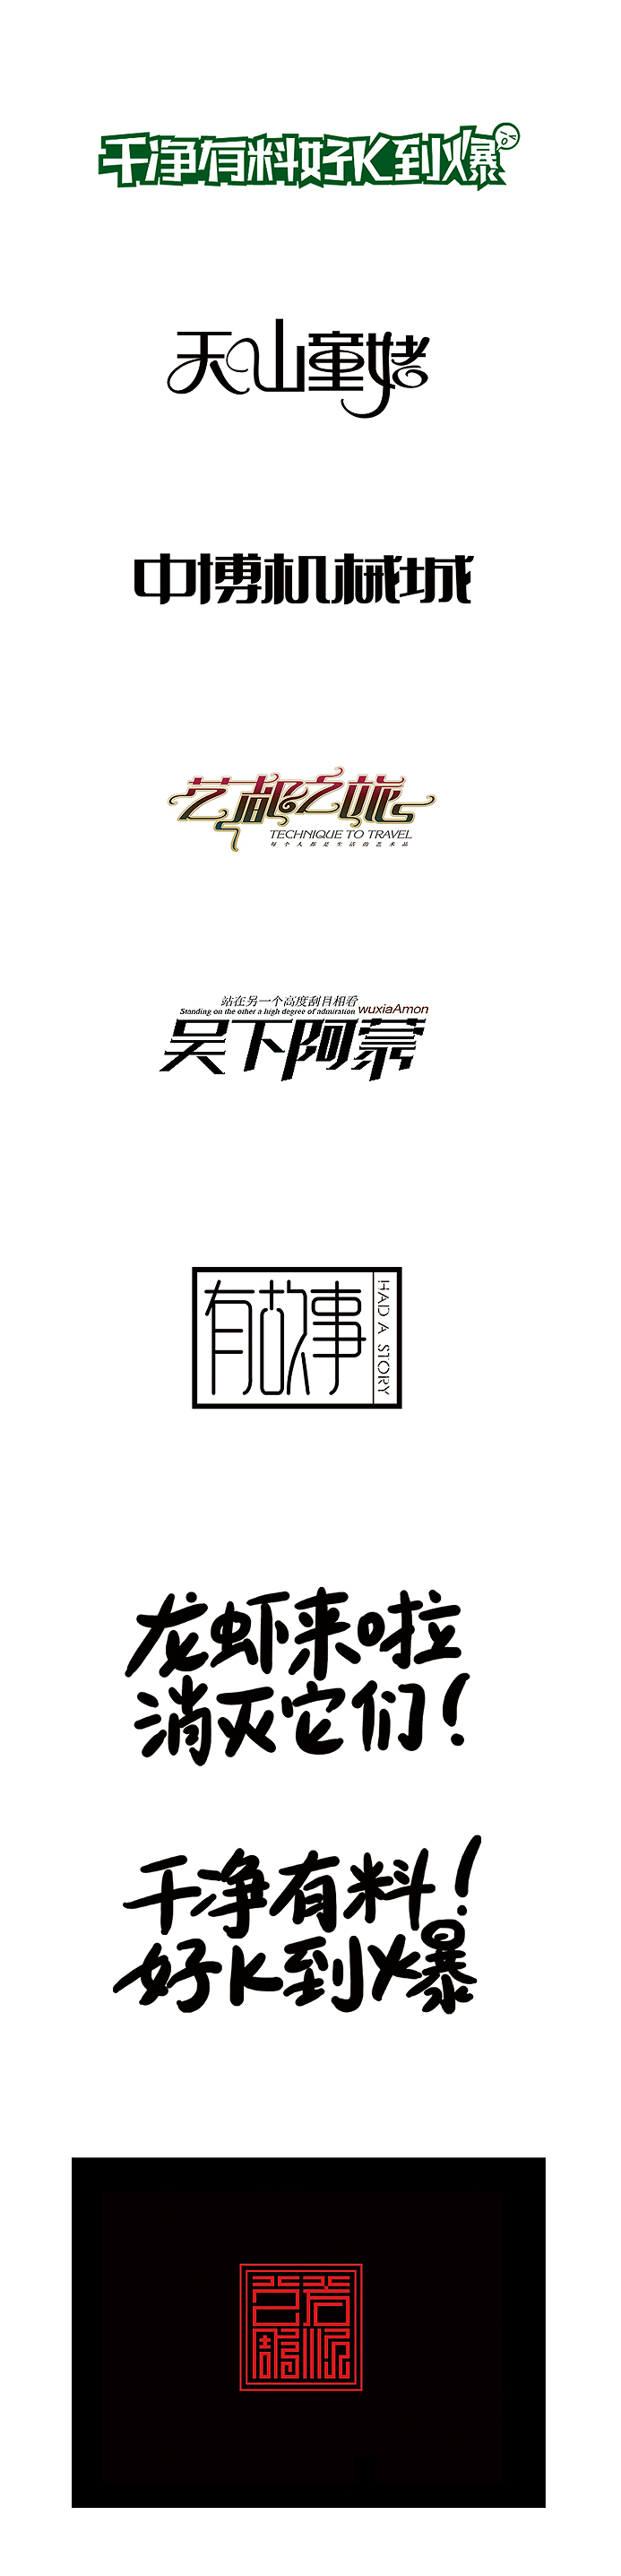 166+ Perfect Chinese Font Art Logo Design Examples for Inspiration